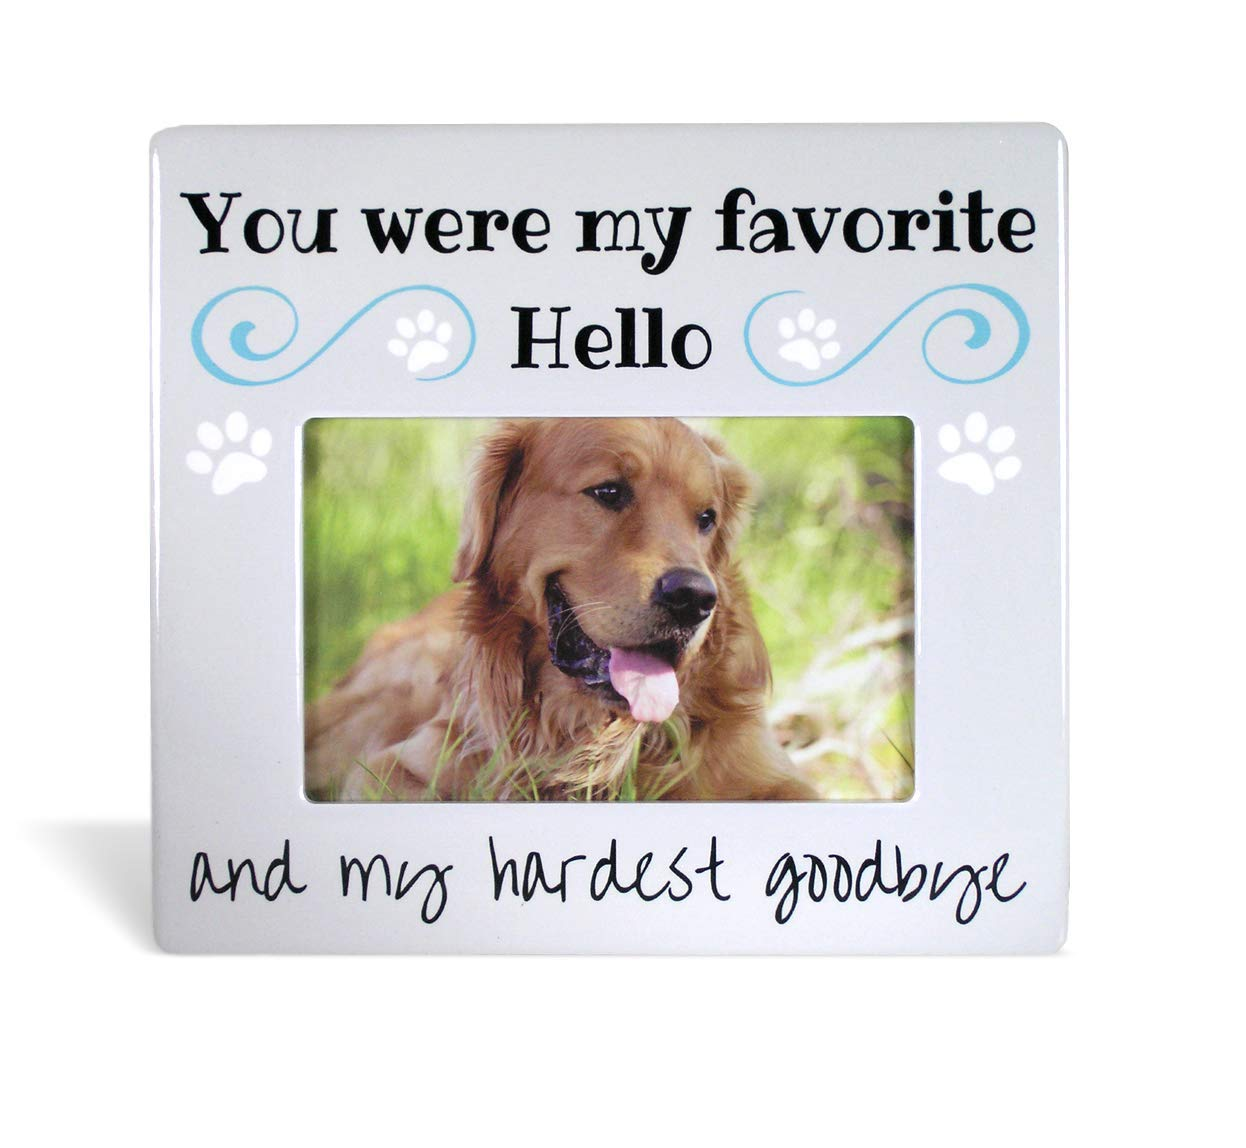 Best dog memorial frames for pictures | Amazon.com